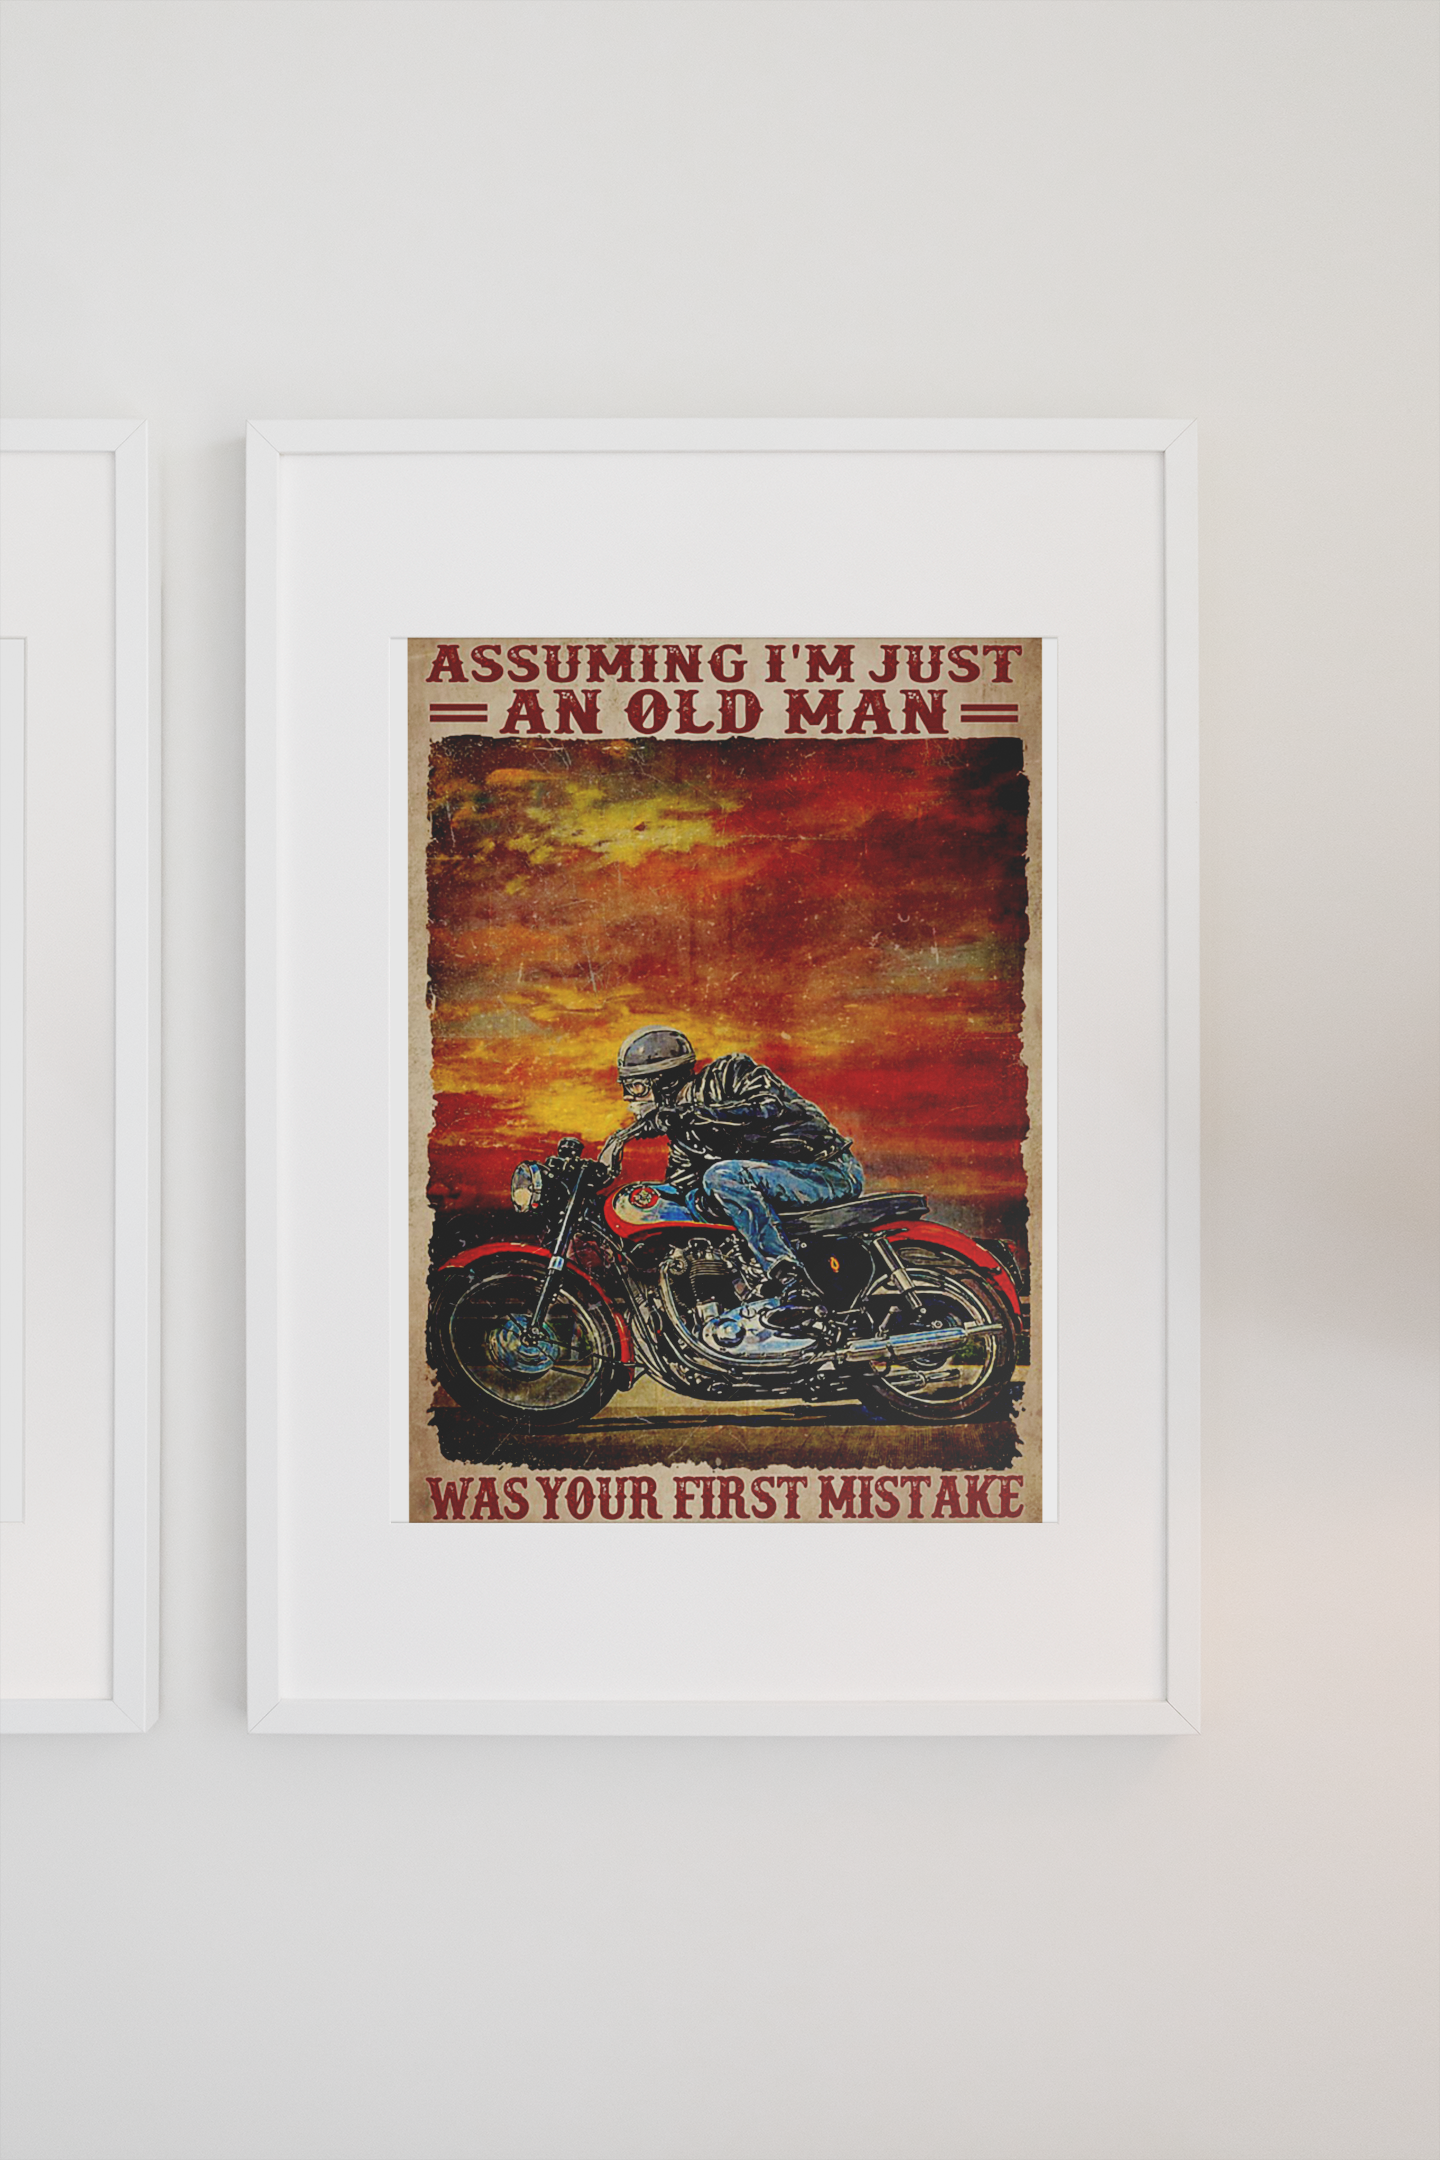 Assuming i'm just an old man was your first mistake poster